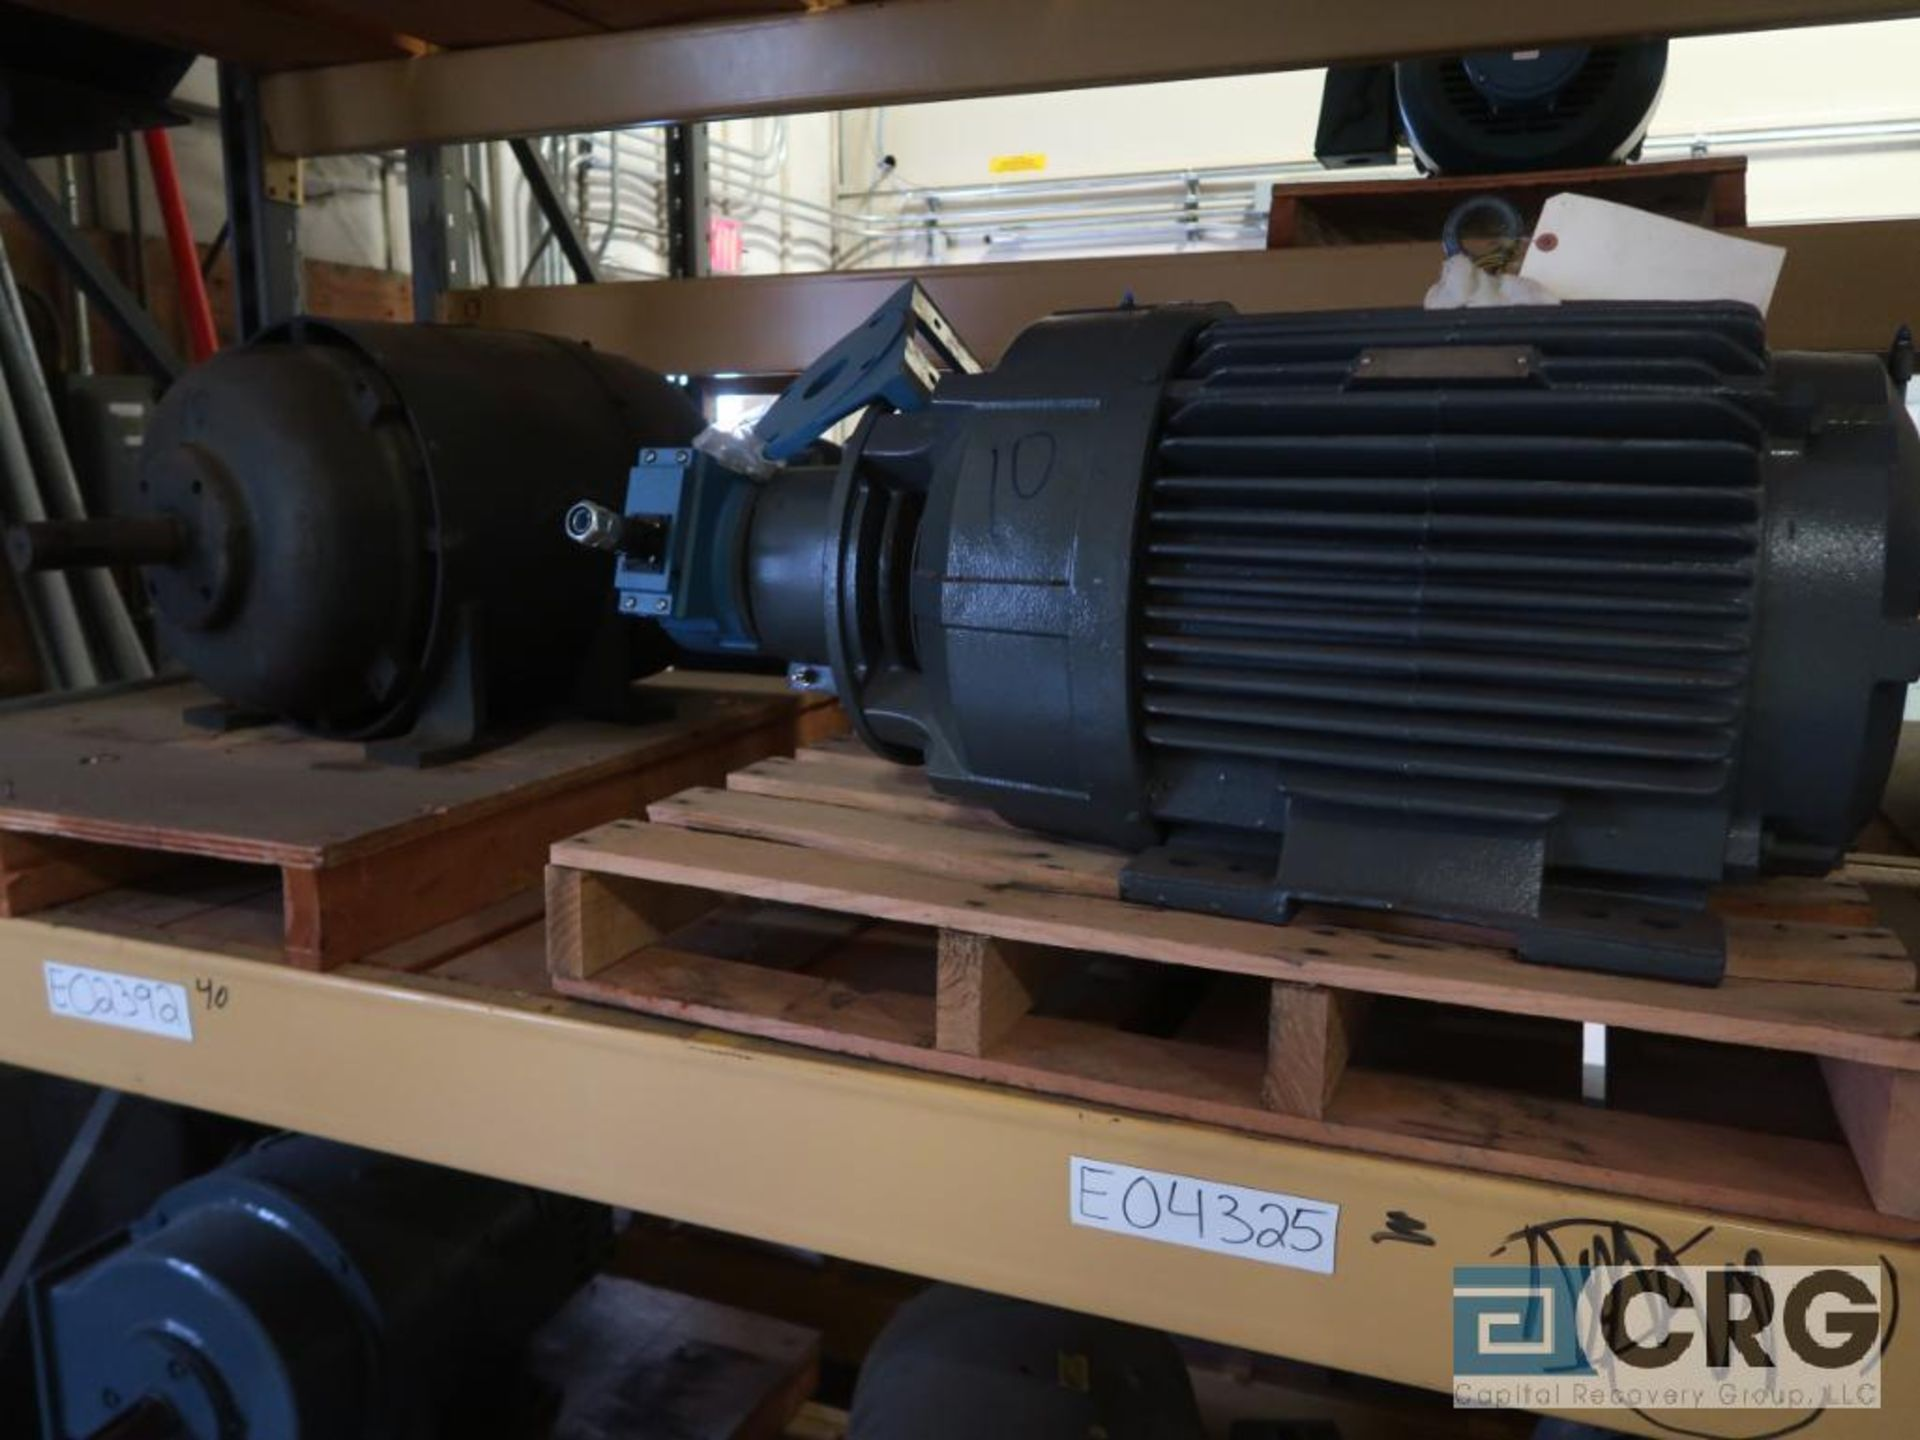 Lot of (29) assorted 15 HP, 10 HP, and 7.5 HP motors on (7) shelves, some with gear drives (Motor - Image 8 of 11